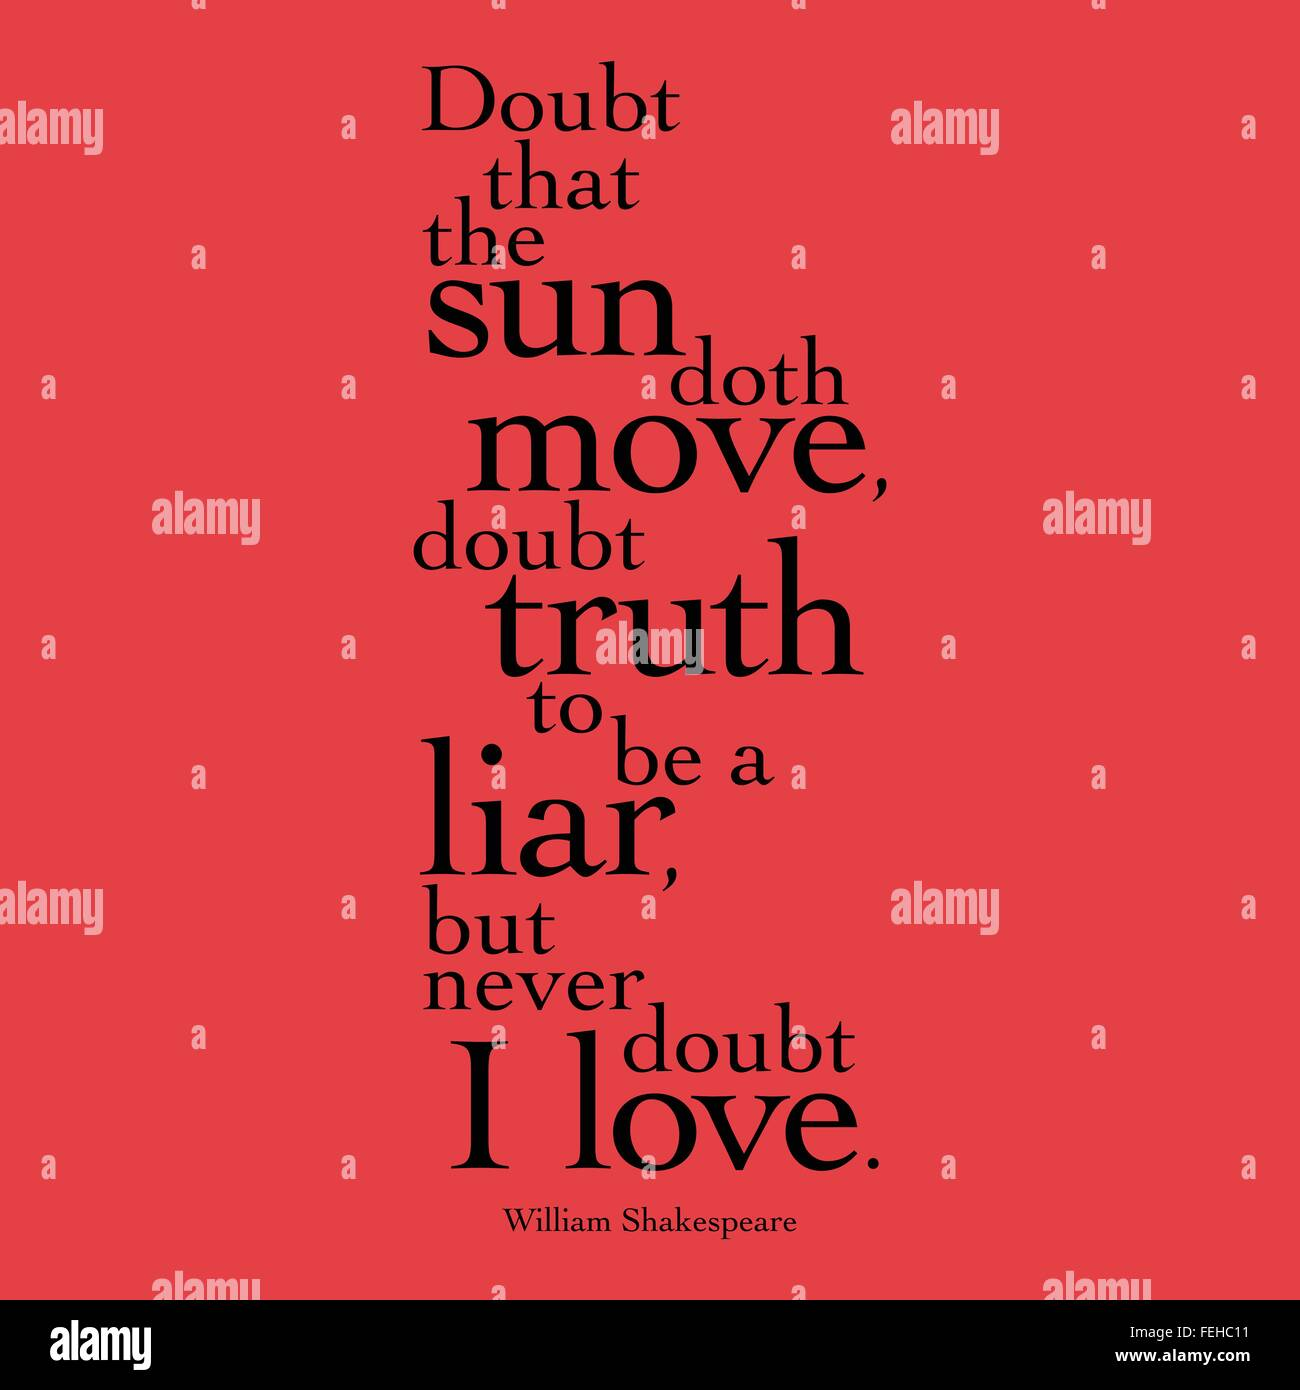 'Doubt that the sun doth move, doubt truth to be a liar, but never doubt I love.' William Shakespeare - Stock Image